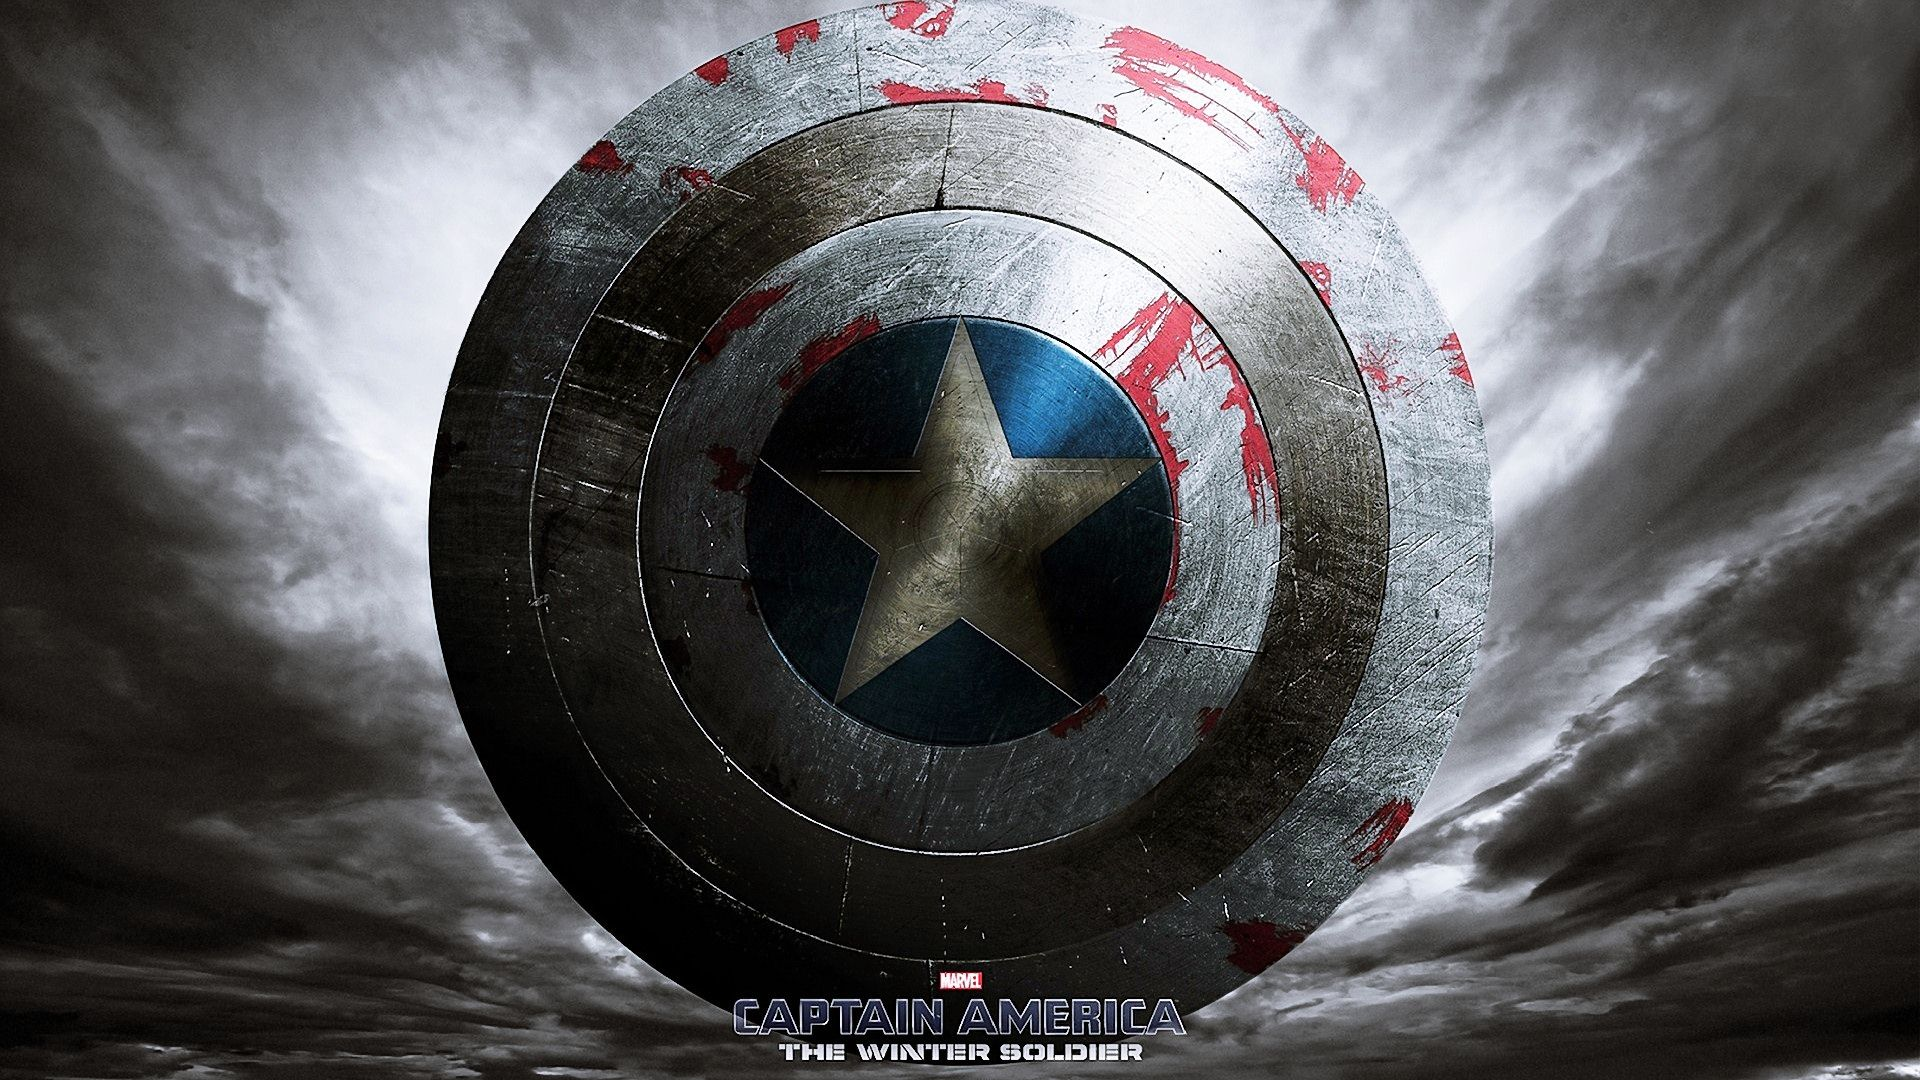 تقييم فيلم Captain America الجديد The Winter Soldier 5